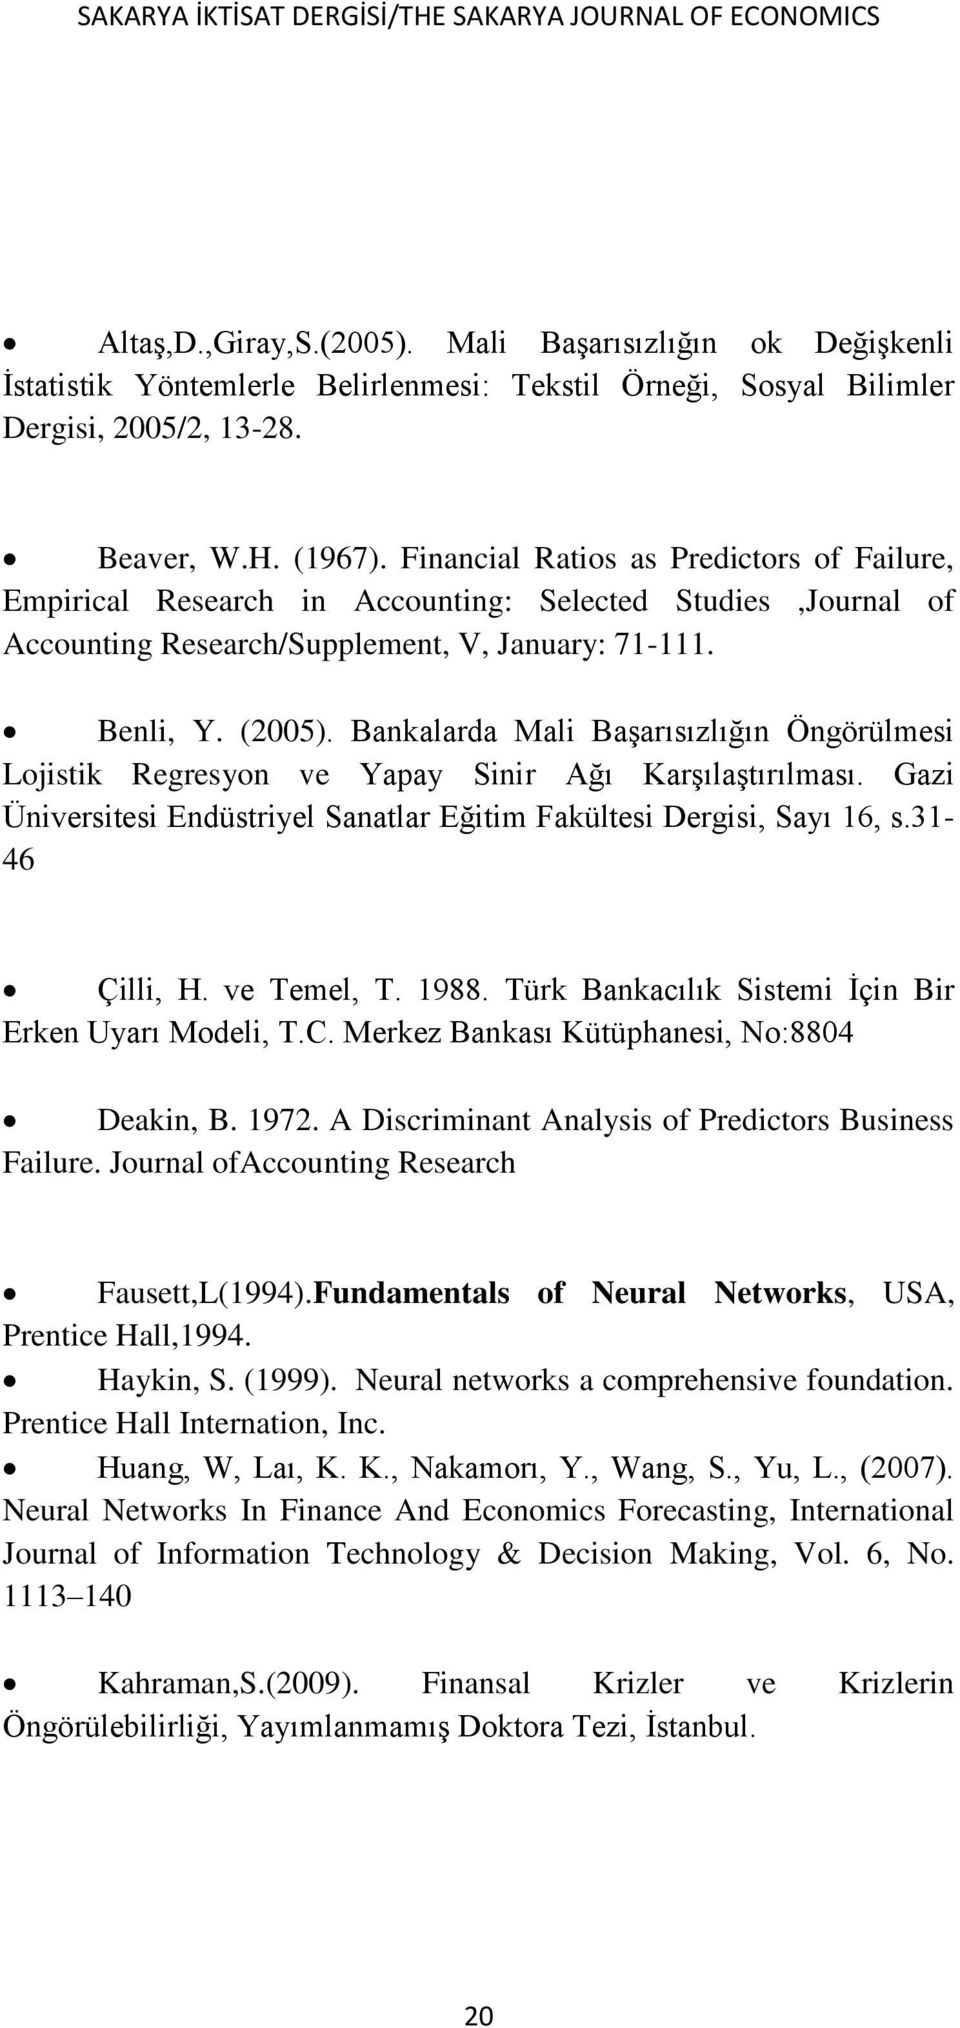 Financial Ratios as Predictors of Failure, Empirical Research in Accounting: Selected Studies,Journal of Accounting Research/Supplement, V, January: 71-111. Benli, Y. (2005).